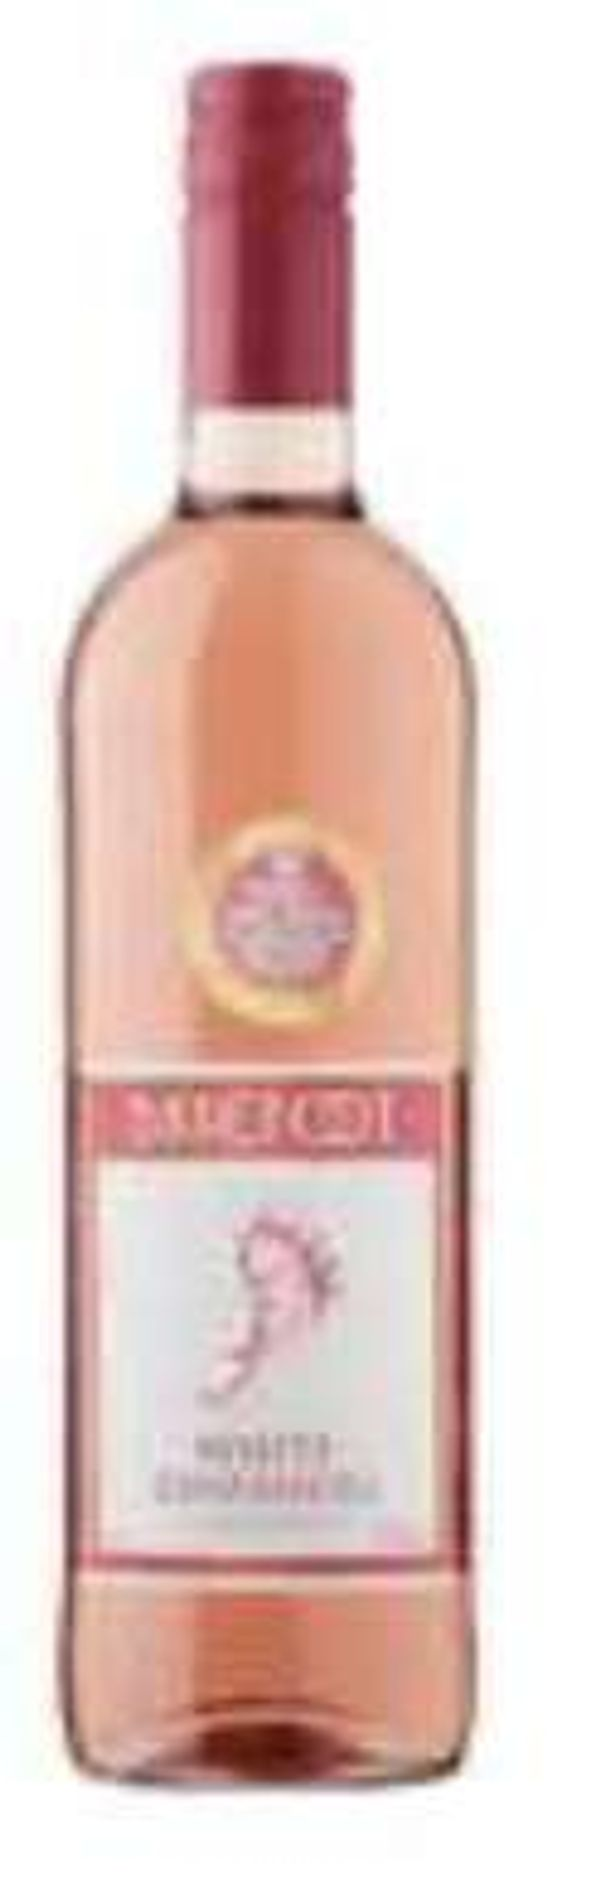 Barefoot White Zinfandel 75cl buy 6 for £30 (additional saving of £3 for nhs staff in England) @ Morrisons